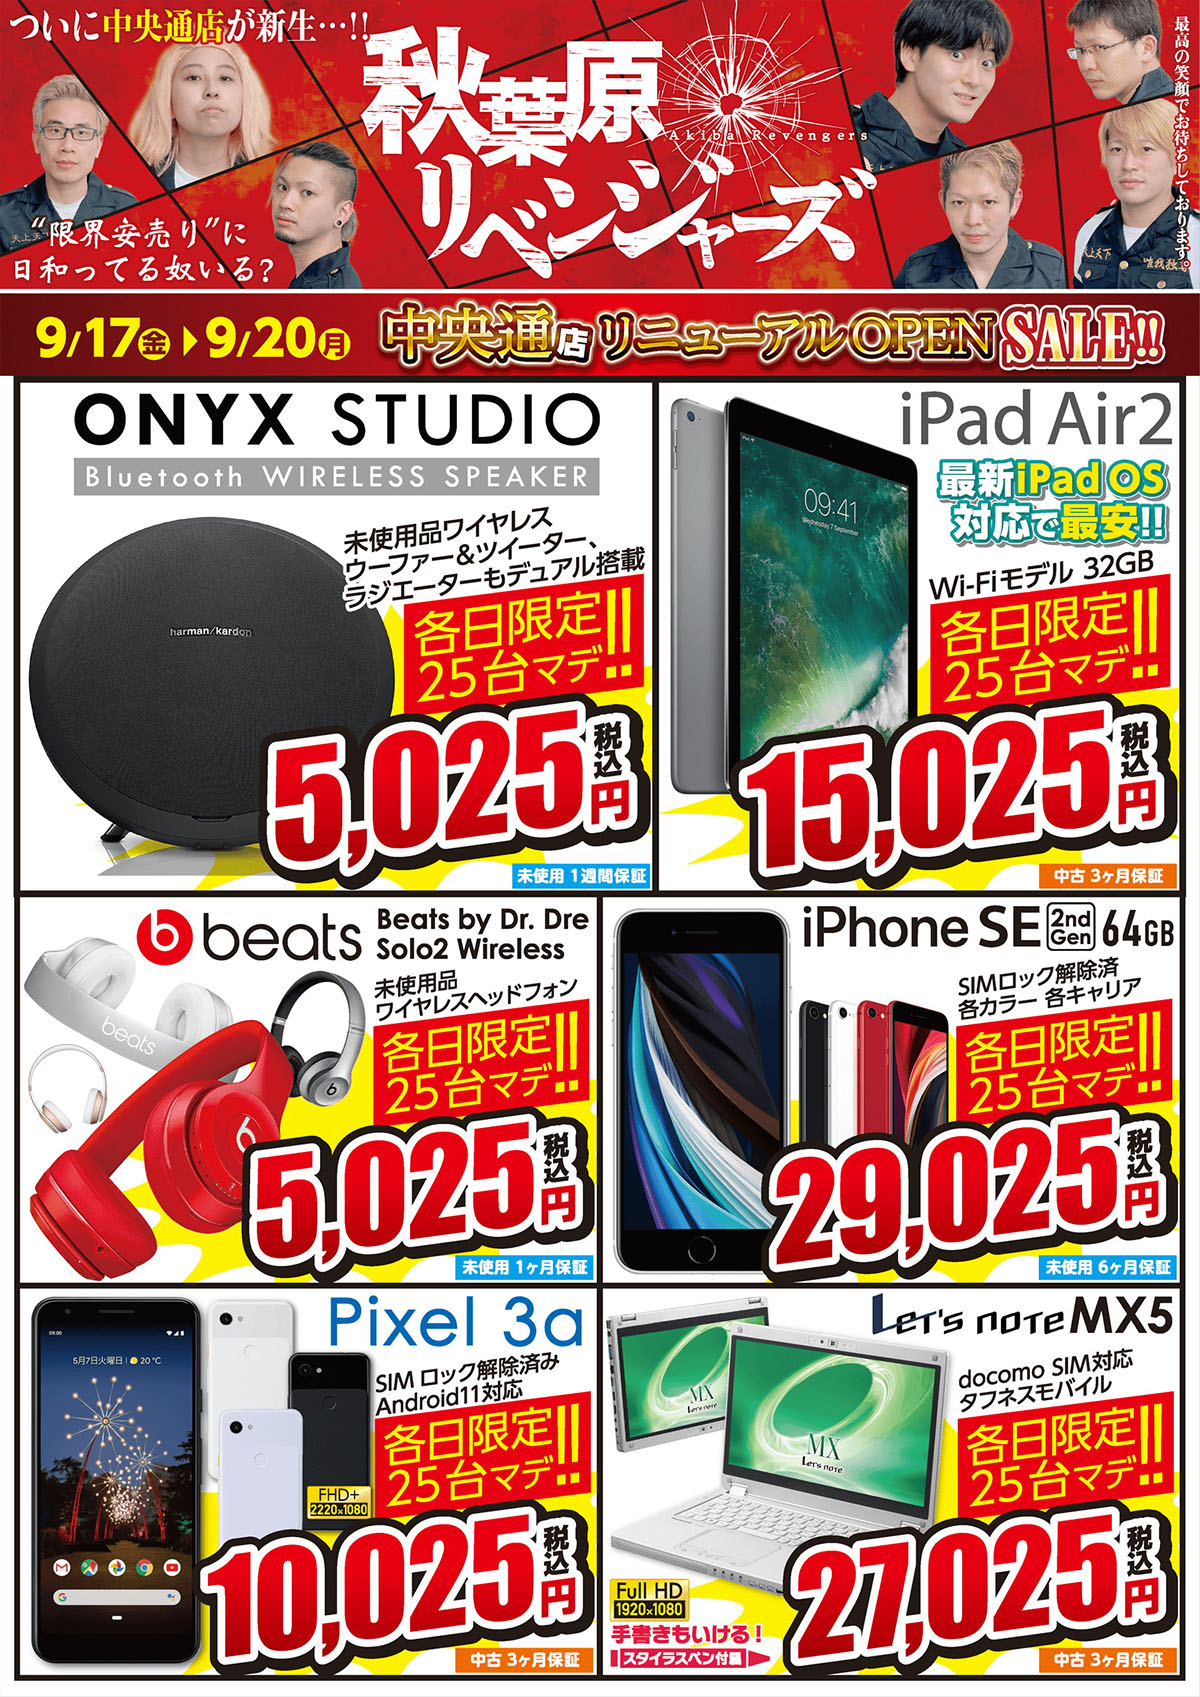 """<a href=""""/shop/junk/iosys2.html"""" class=""""deliver_inner_content"""">イオシス アキバ中央通店</a>限定のセール品"""